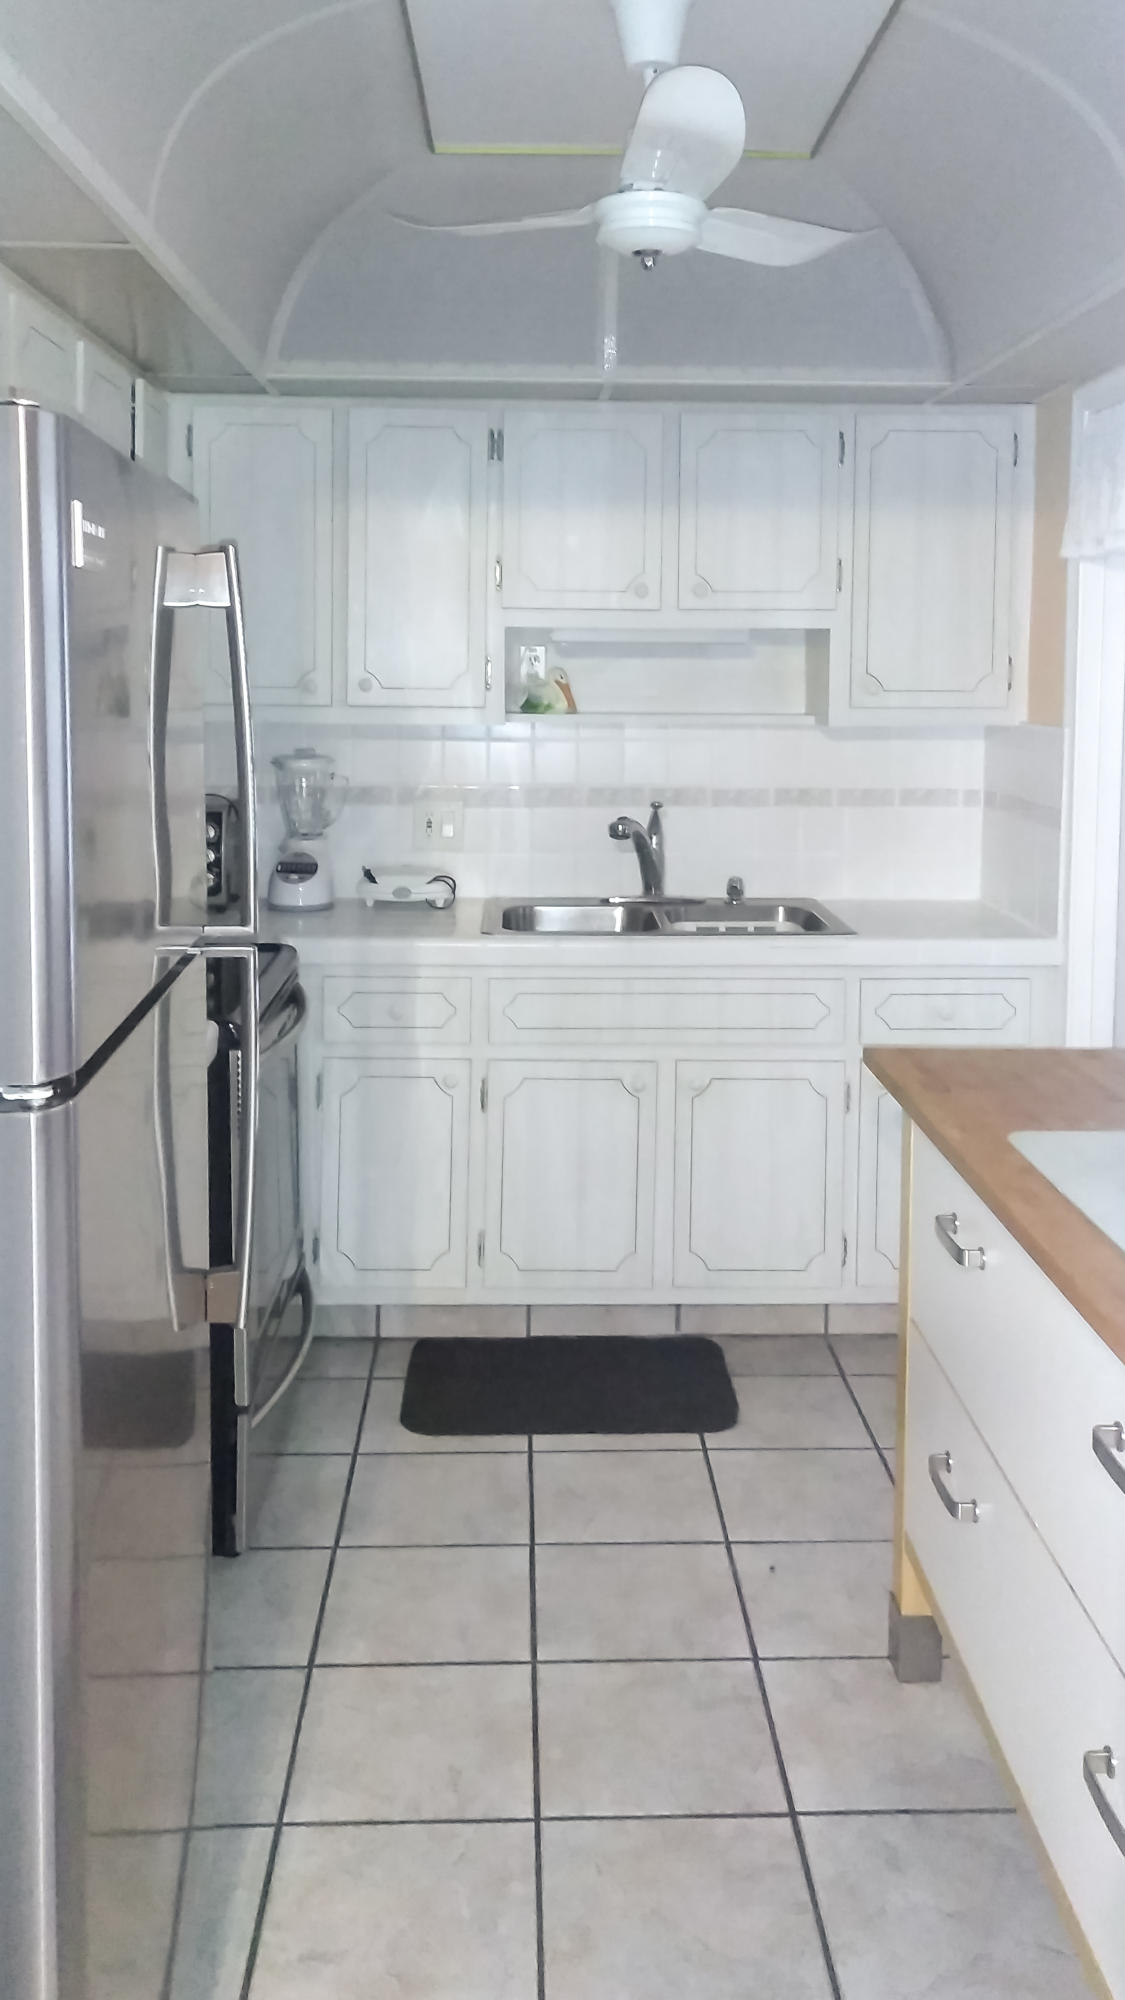 1490 43rd Avenue, Lauderhill, Florida 33313, 2 Bedrooms Bedrooms, ,2 BathroomsBathrooms,Residential,for Rent,PARK SOUTH 7 CONDO,43rd,RX-10652531, , , ,for Rent